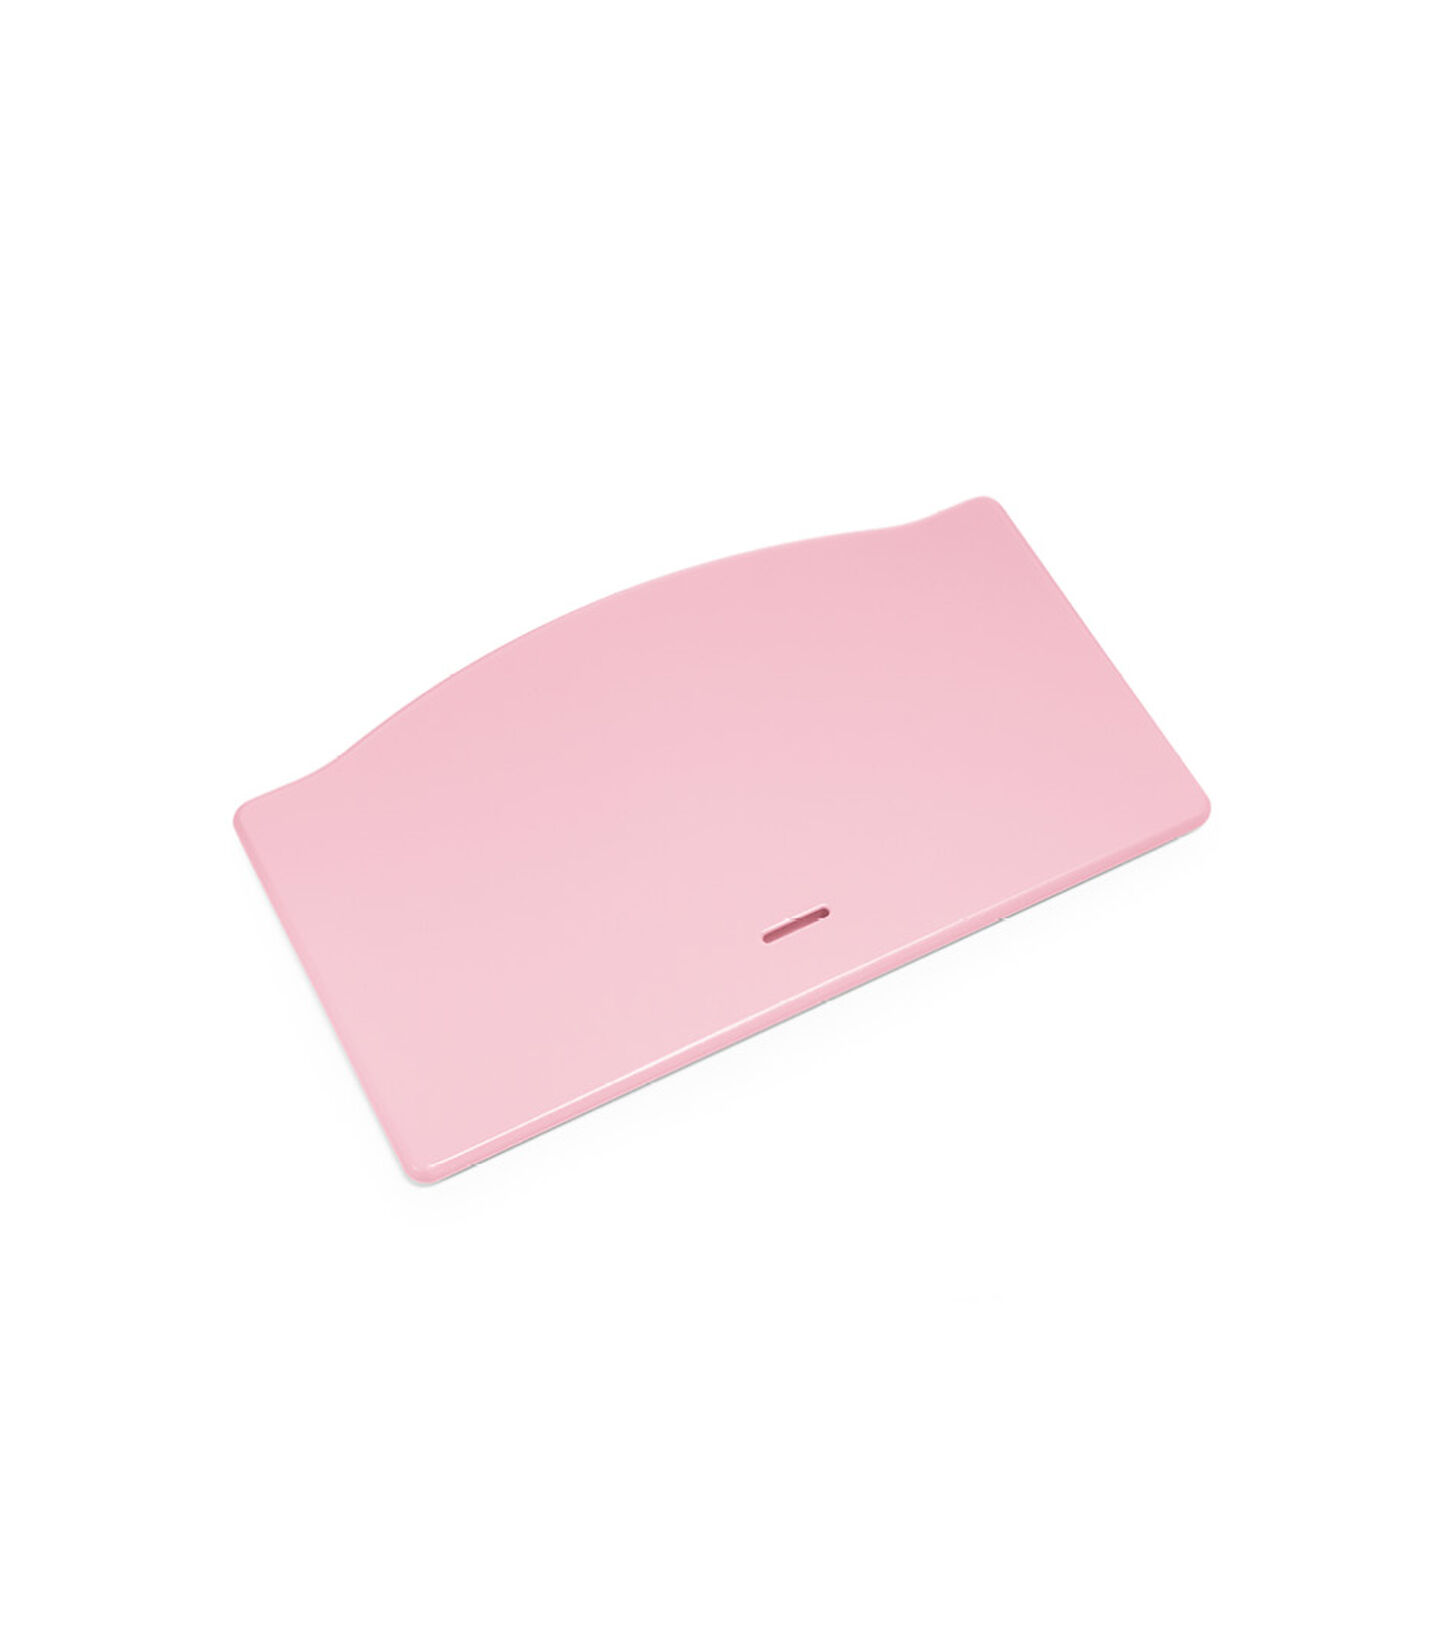 Tripp Trapp® Seatplate Soft Pink, Soft Pink, mainview view 1